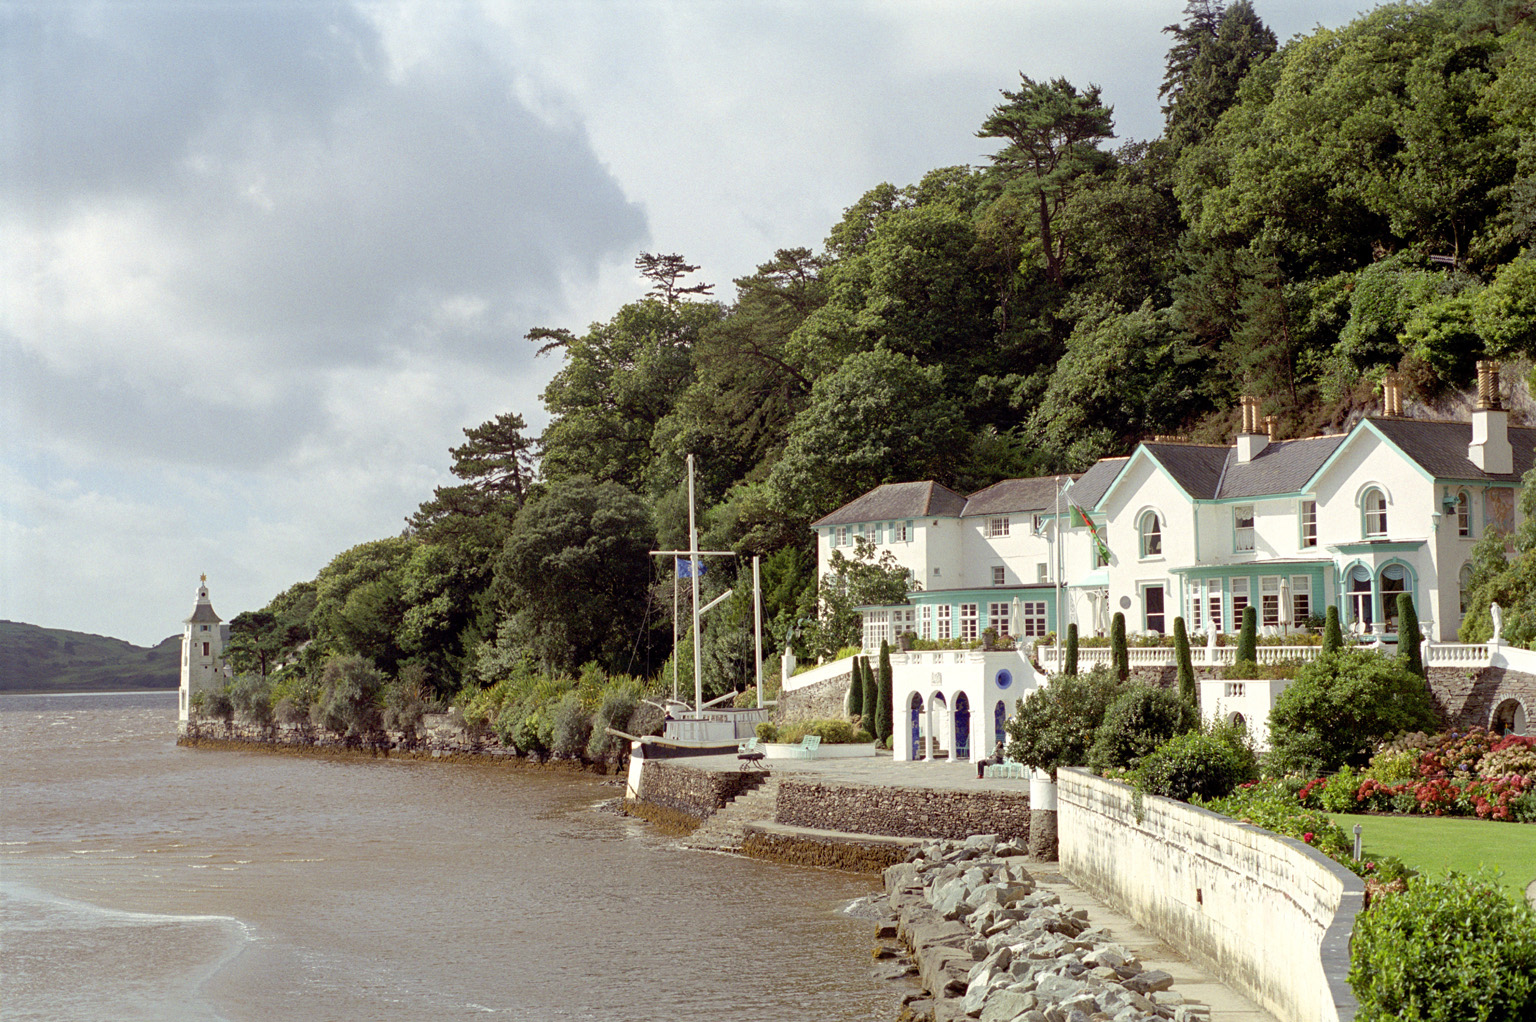 Scenic coastal landscape of the Portmeirion Hotel, Gwynedd, North Wales, overlooking the water amidst lush greenery